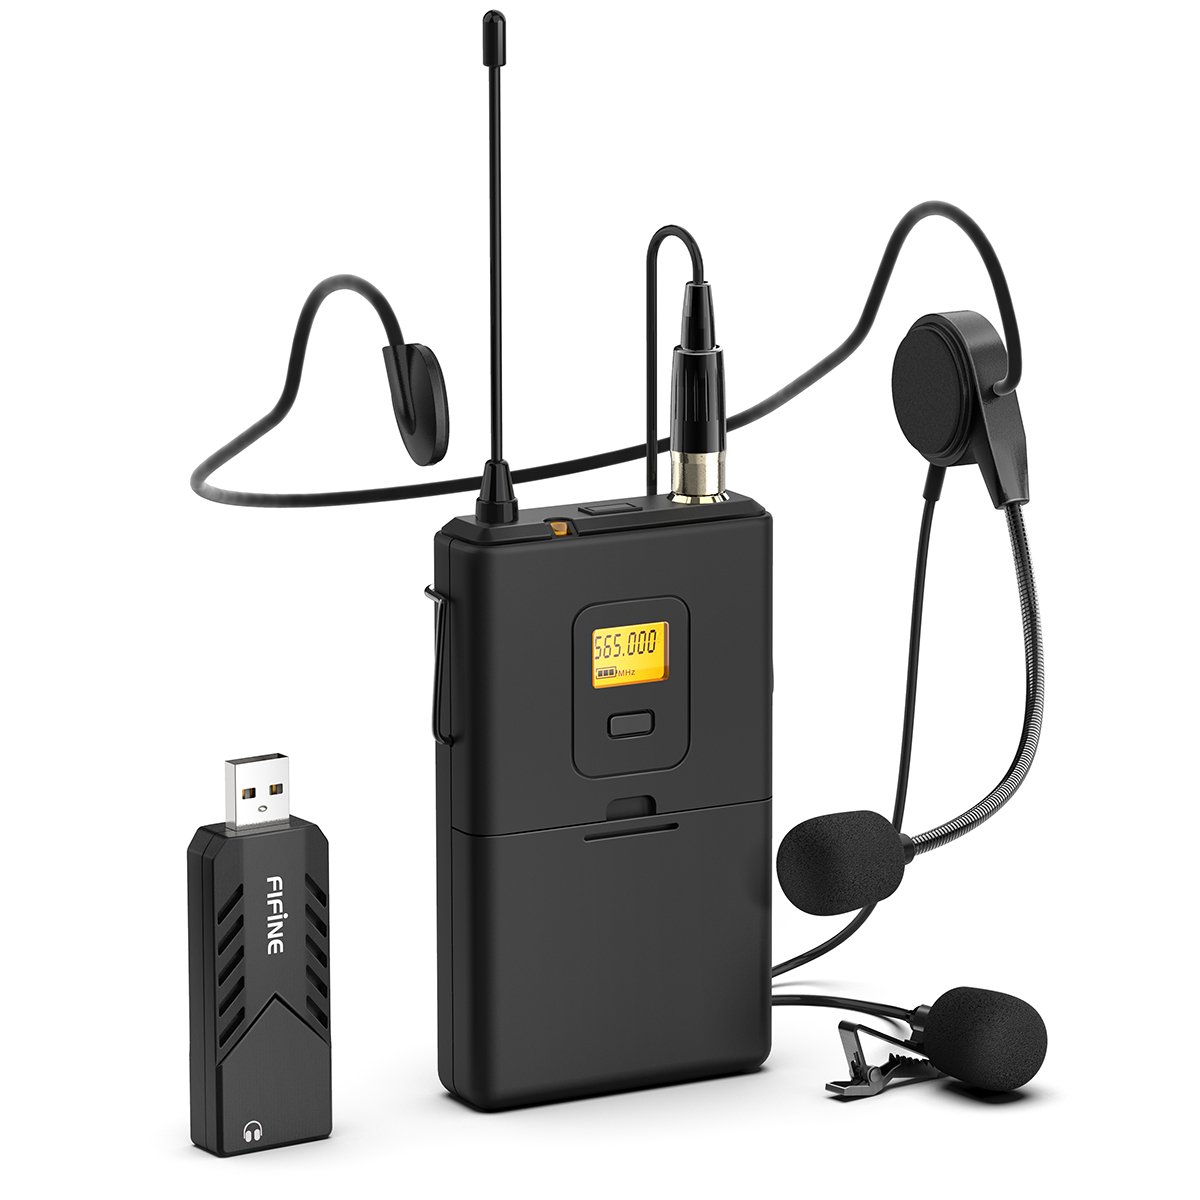 Fifine Wireless Microphone for PC & Mac, Lavalier Clip-on Unidirectional Condenser Microphone with USB Receiver for Interview, Recording & Podcast. (K031)